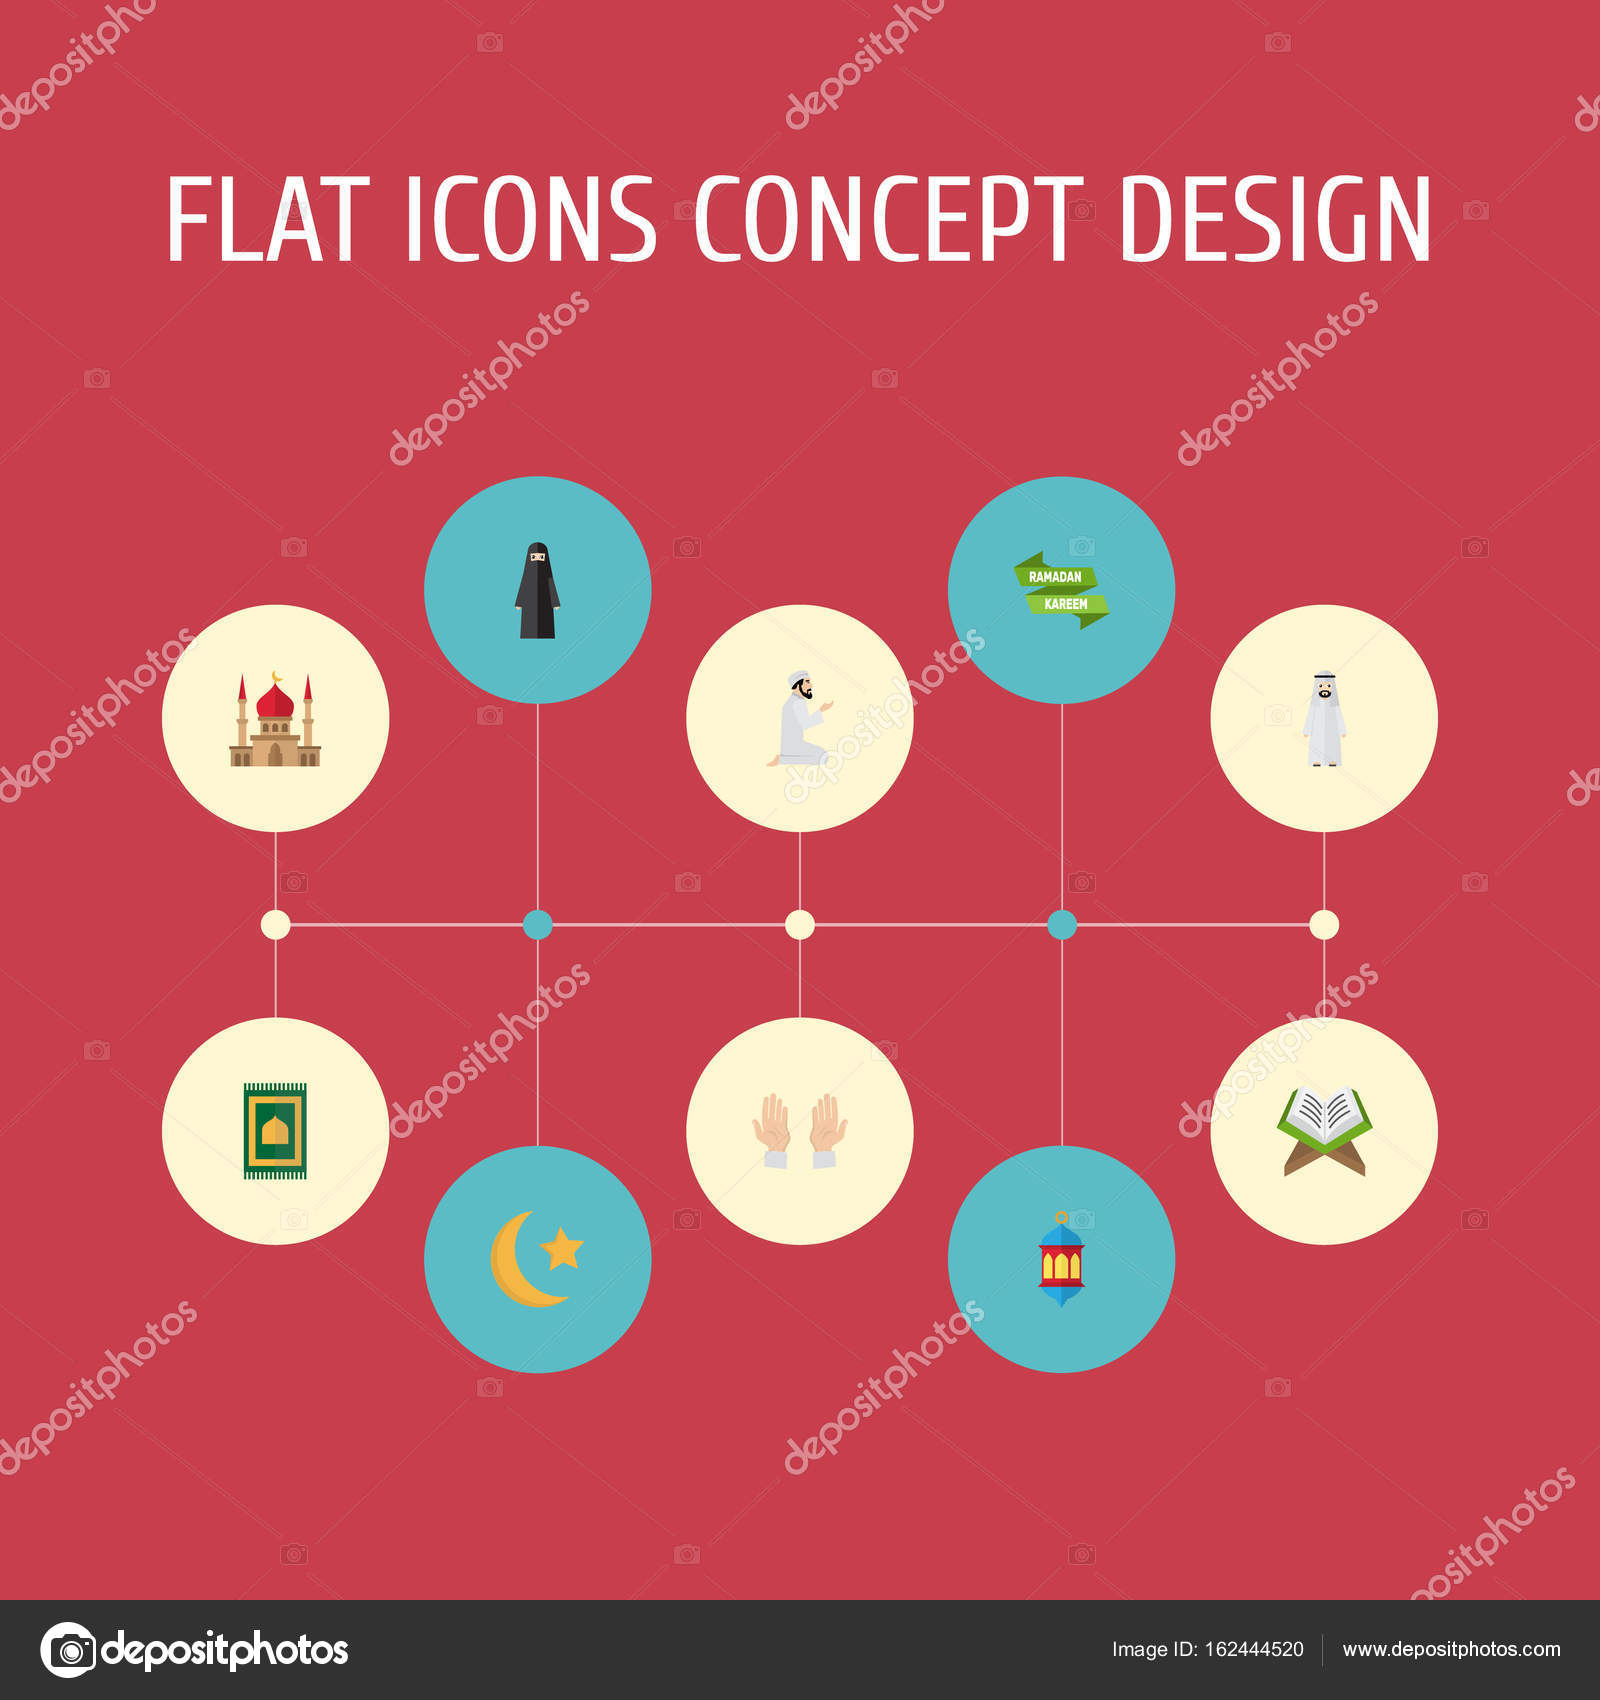 Flat Icons Praying Man Islamic Lamp Muslim Woman And Other Vector